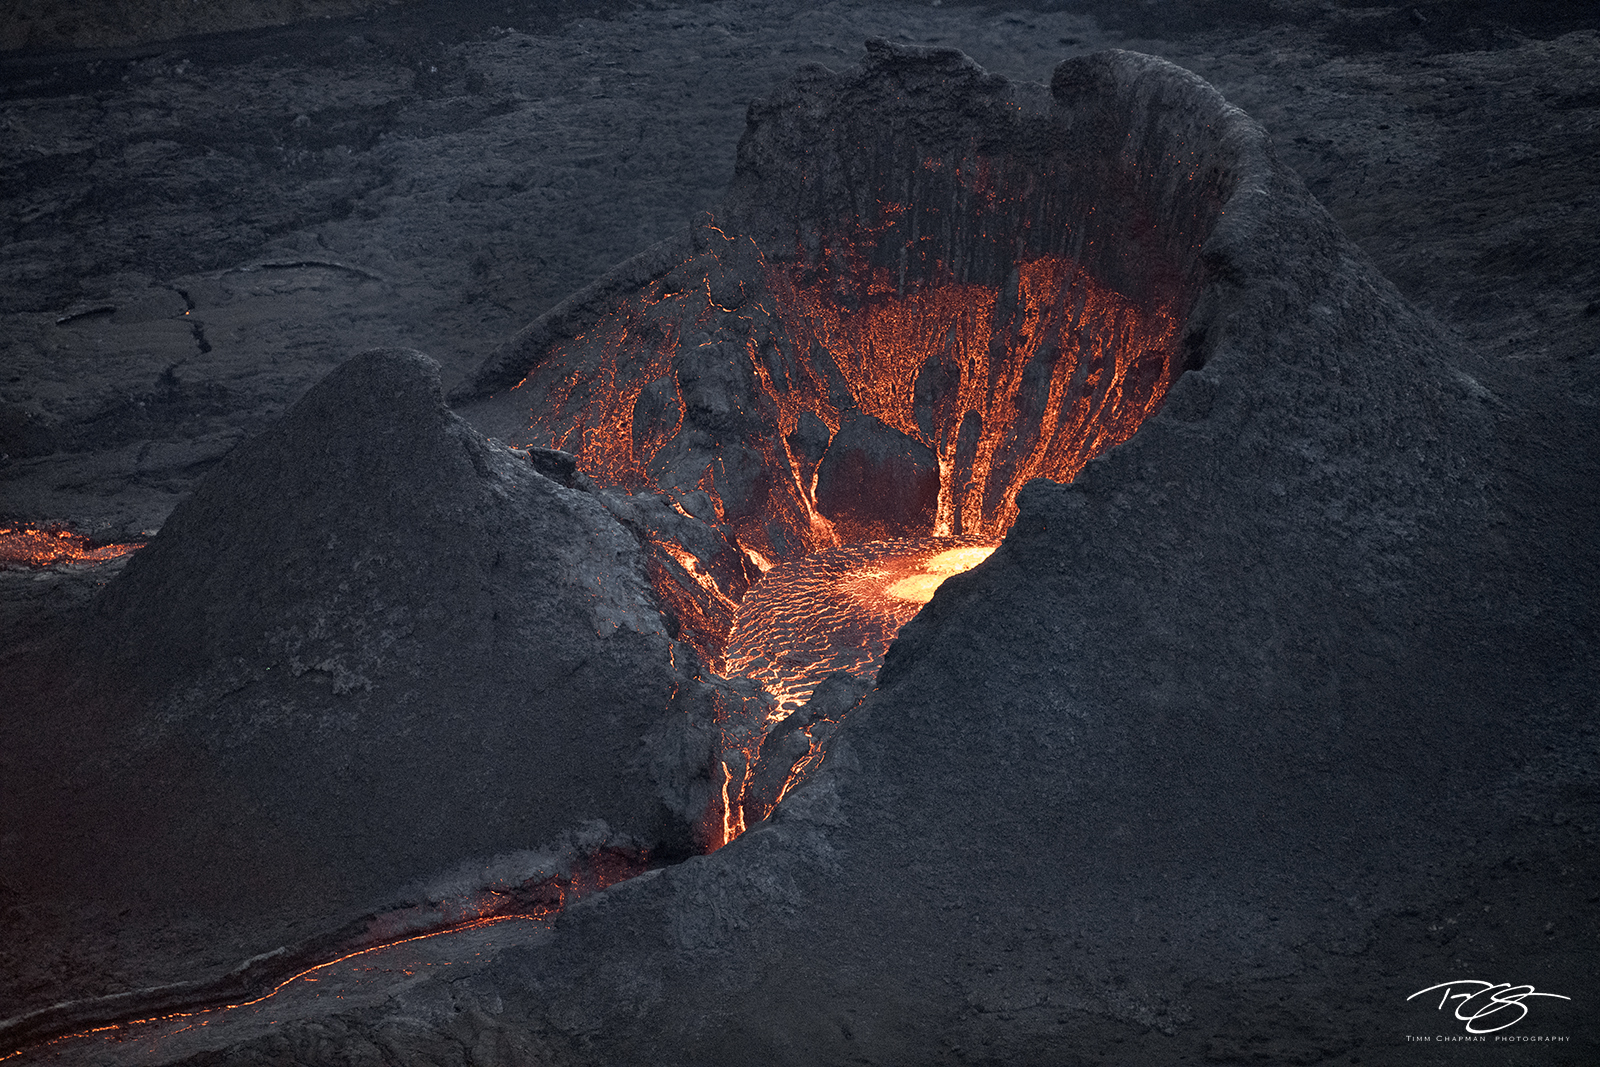 Volcano caldera glowing as magma bubbles to the surface